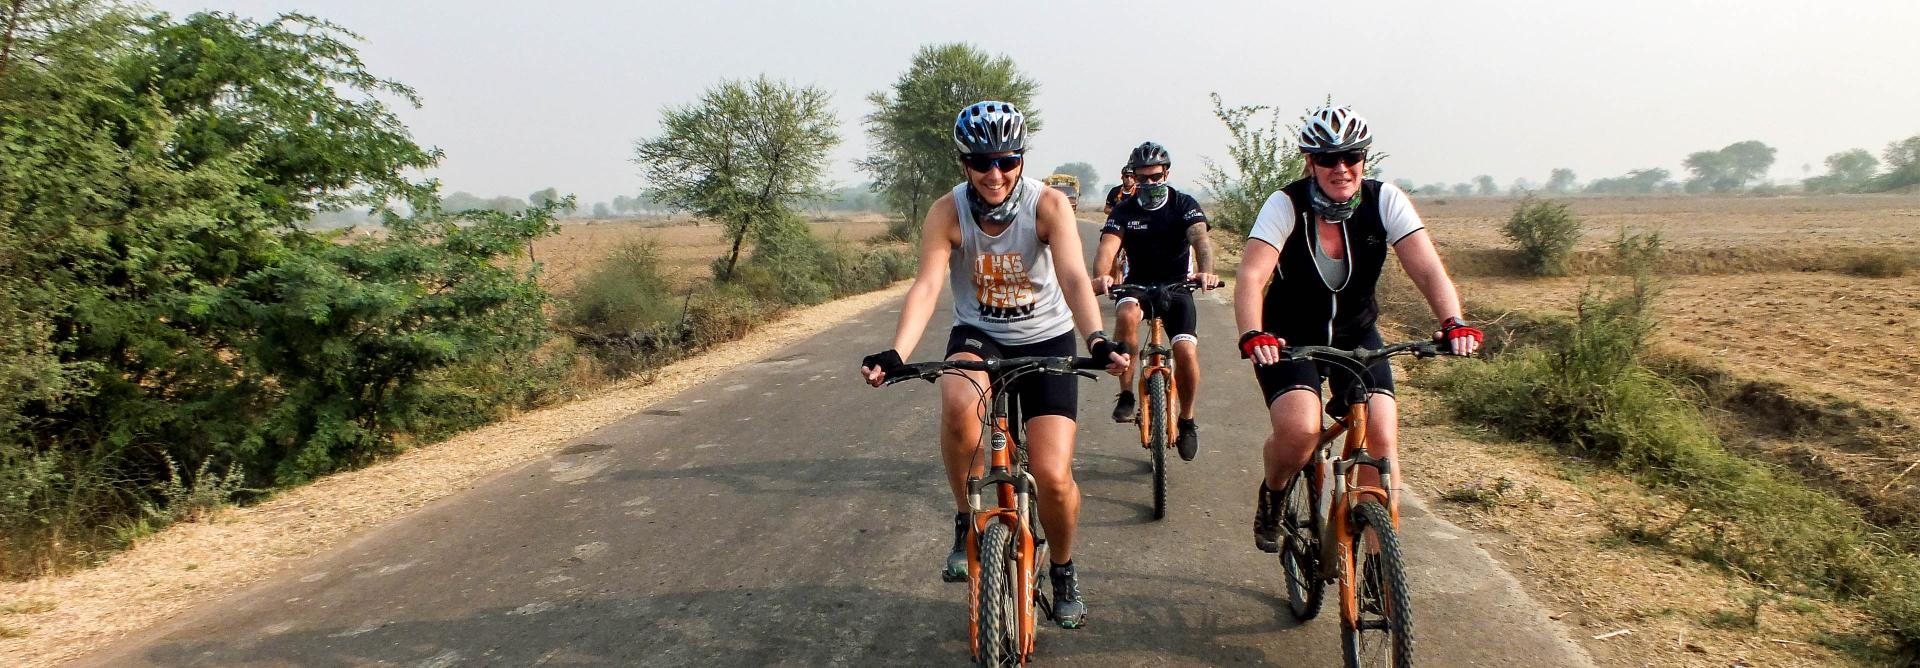 India Golden Triangle cycle challenge